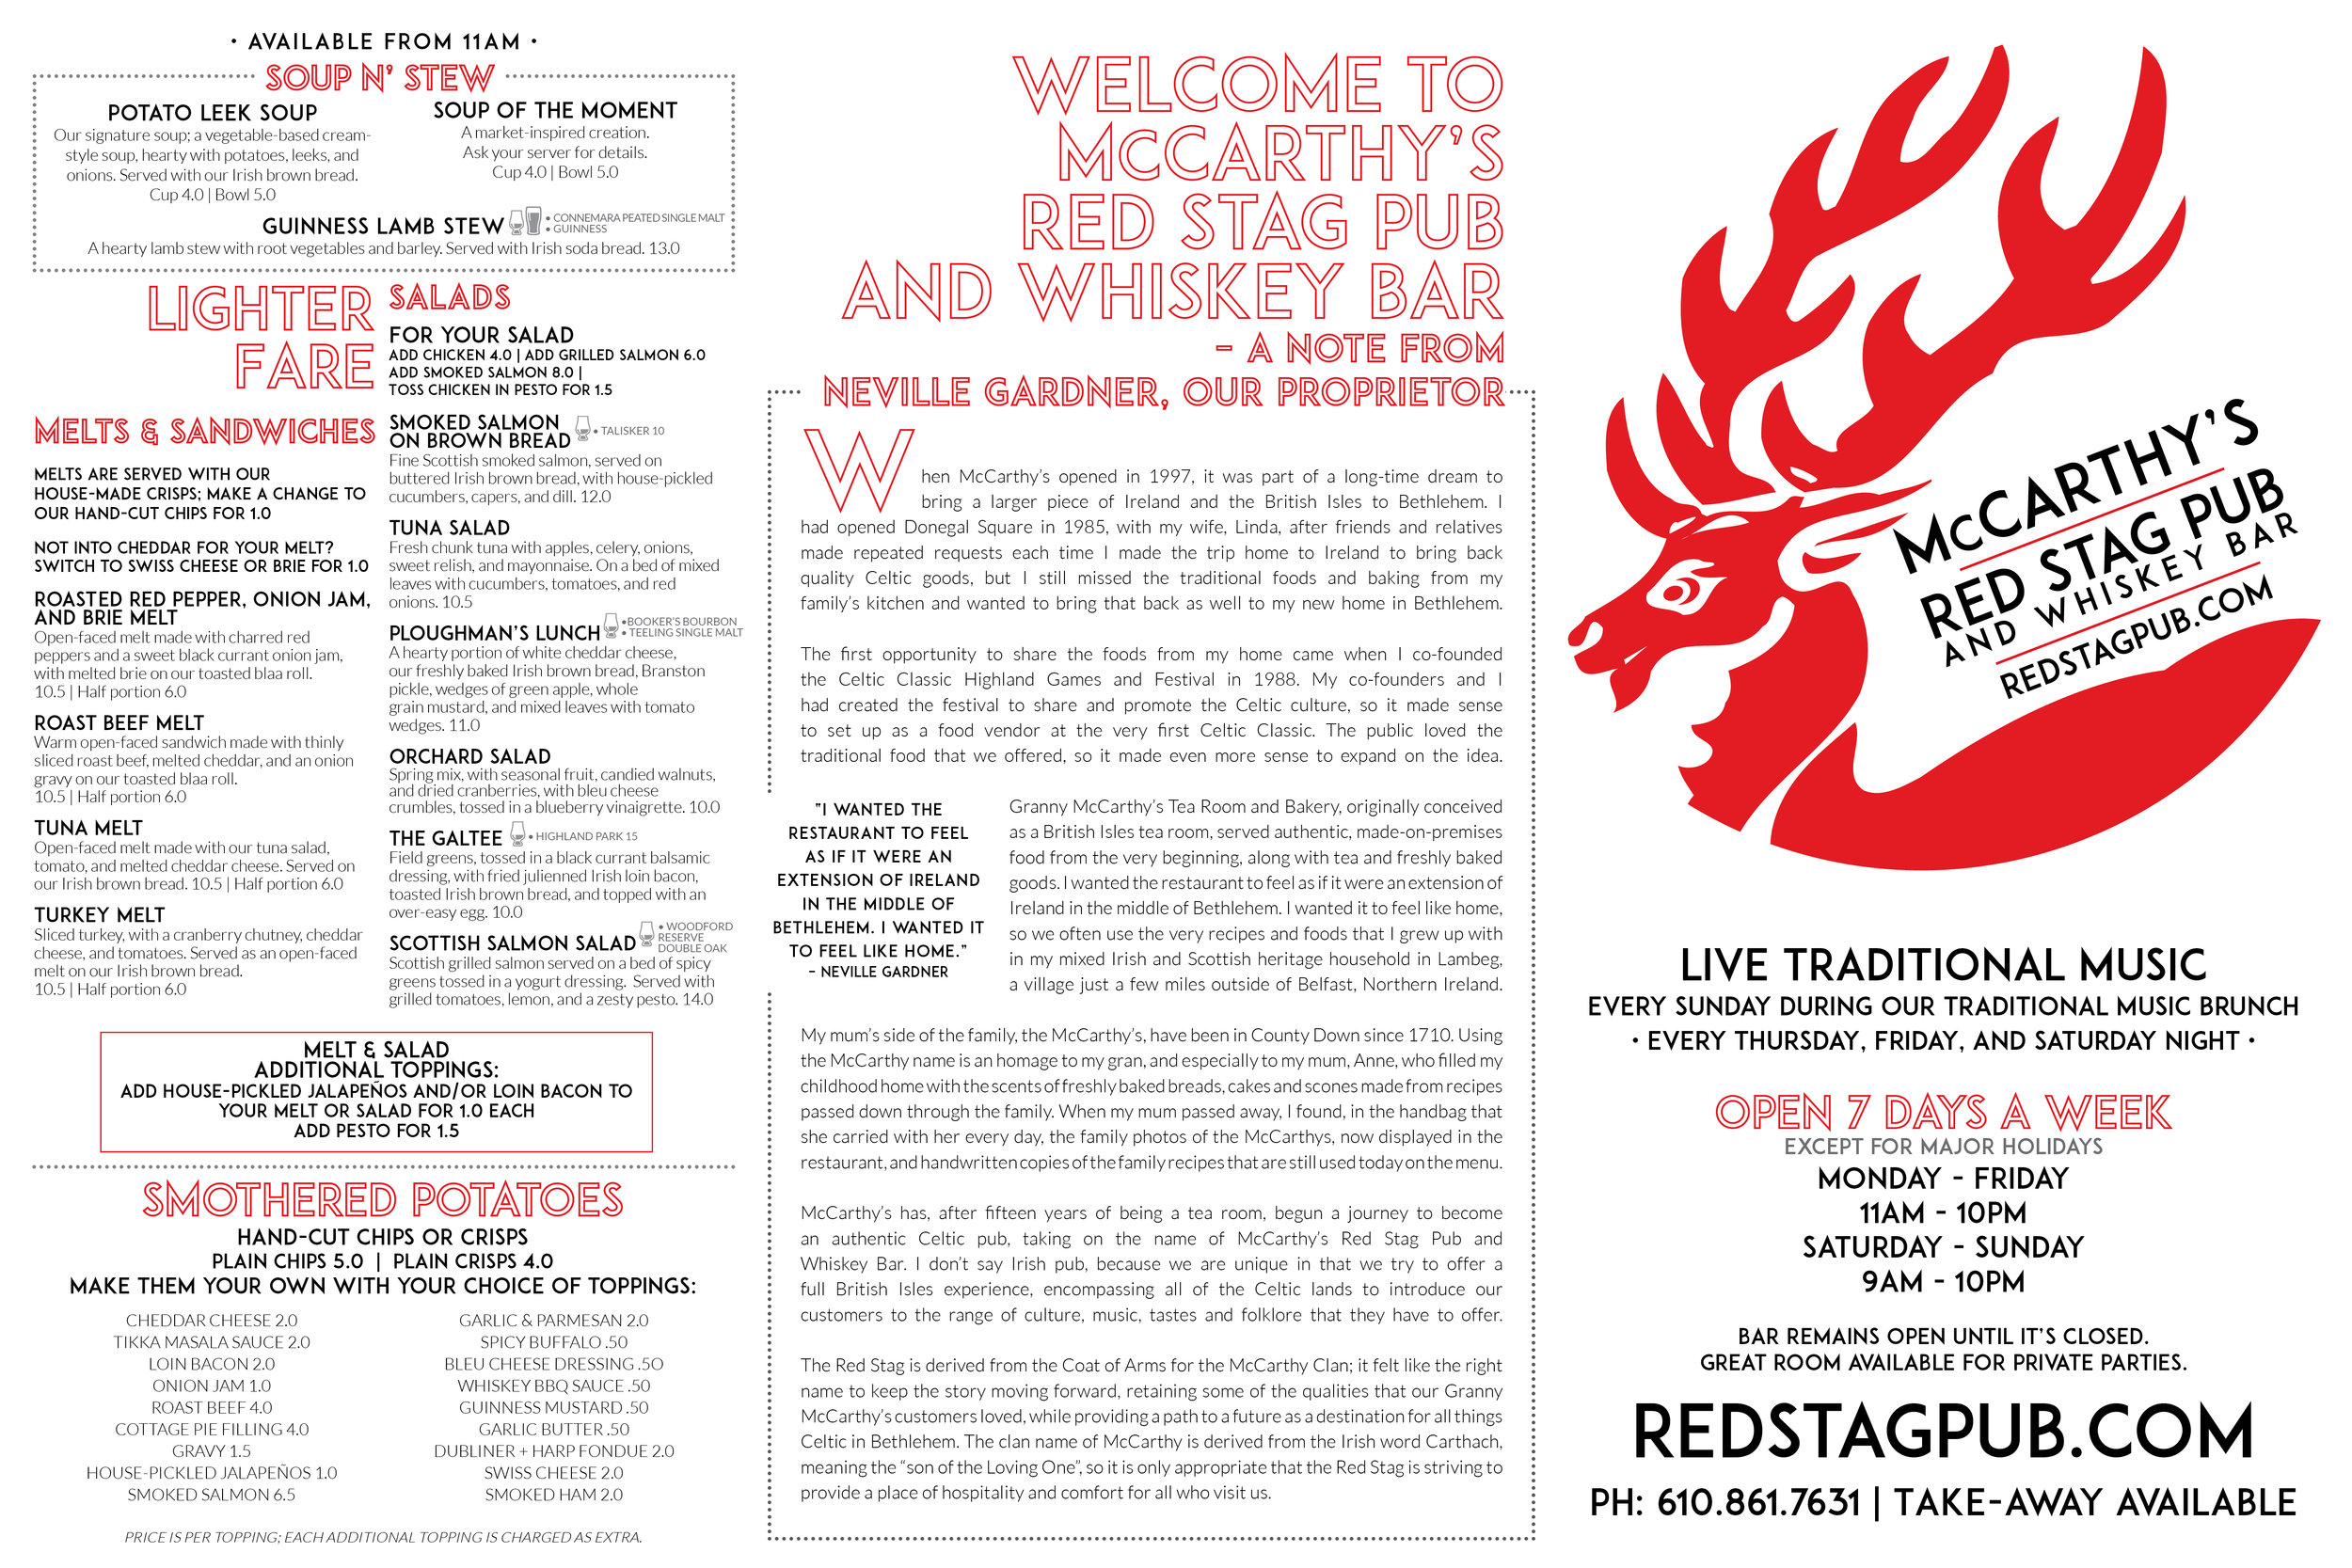 McCARTHY'S MAIN MENU • 18x12 TRI-FOLD MENU  CLIENT: McCARTHY'S RED STAG PUB AND WHISKEY BAR BRIEF: Create an easy to read in low light menu featuring the pub's new offerings and McCarthy's history. WORK: Adobe InDesign